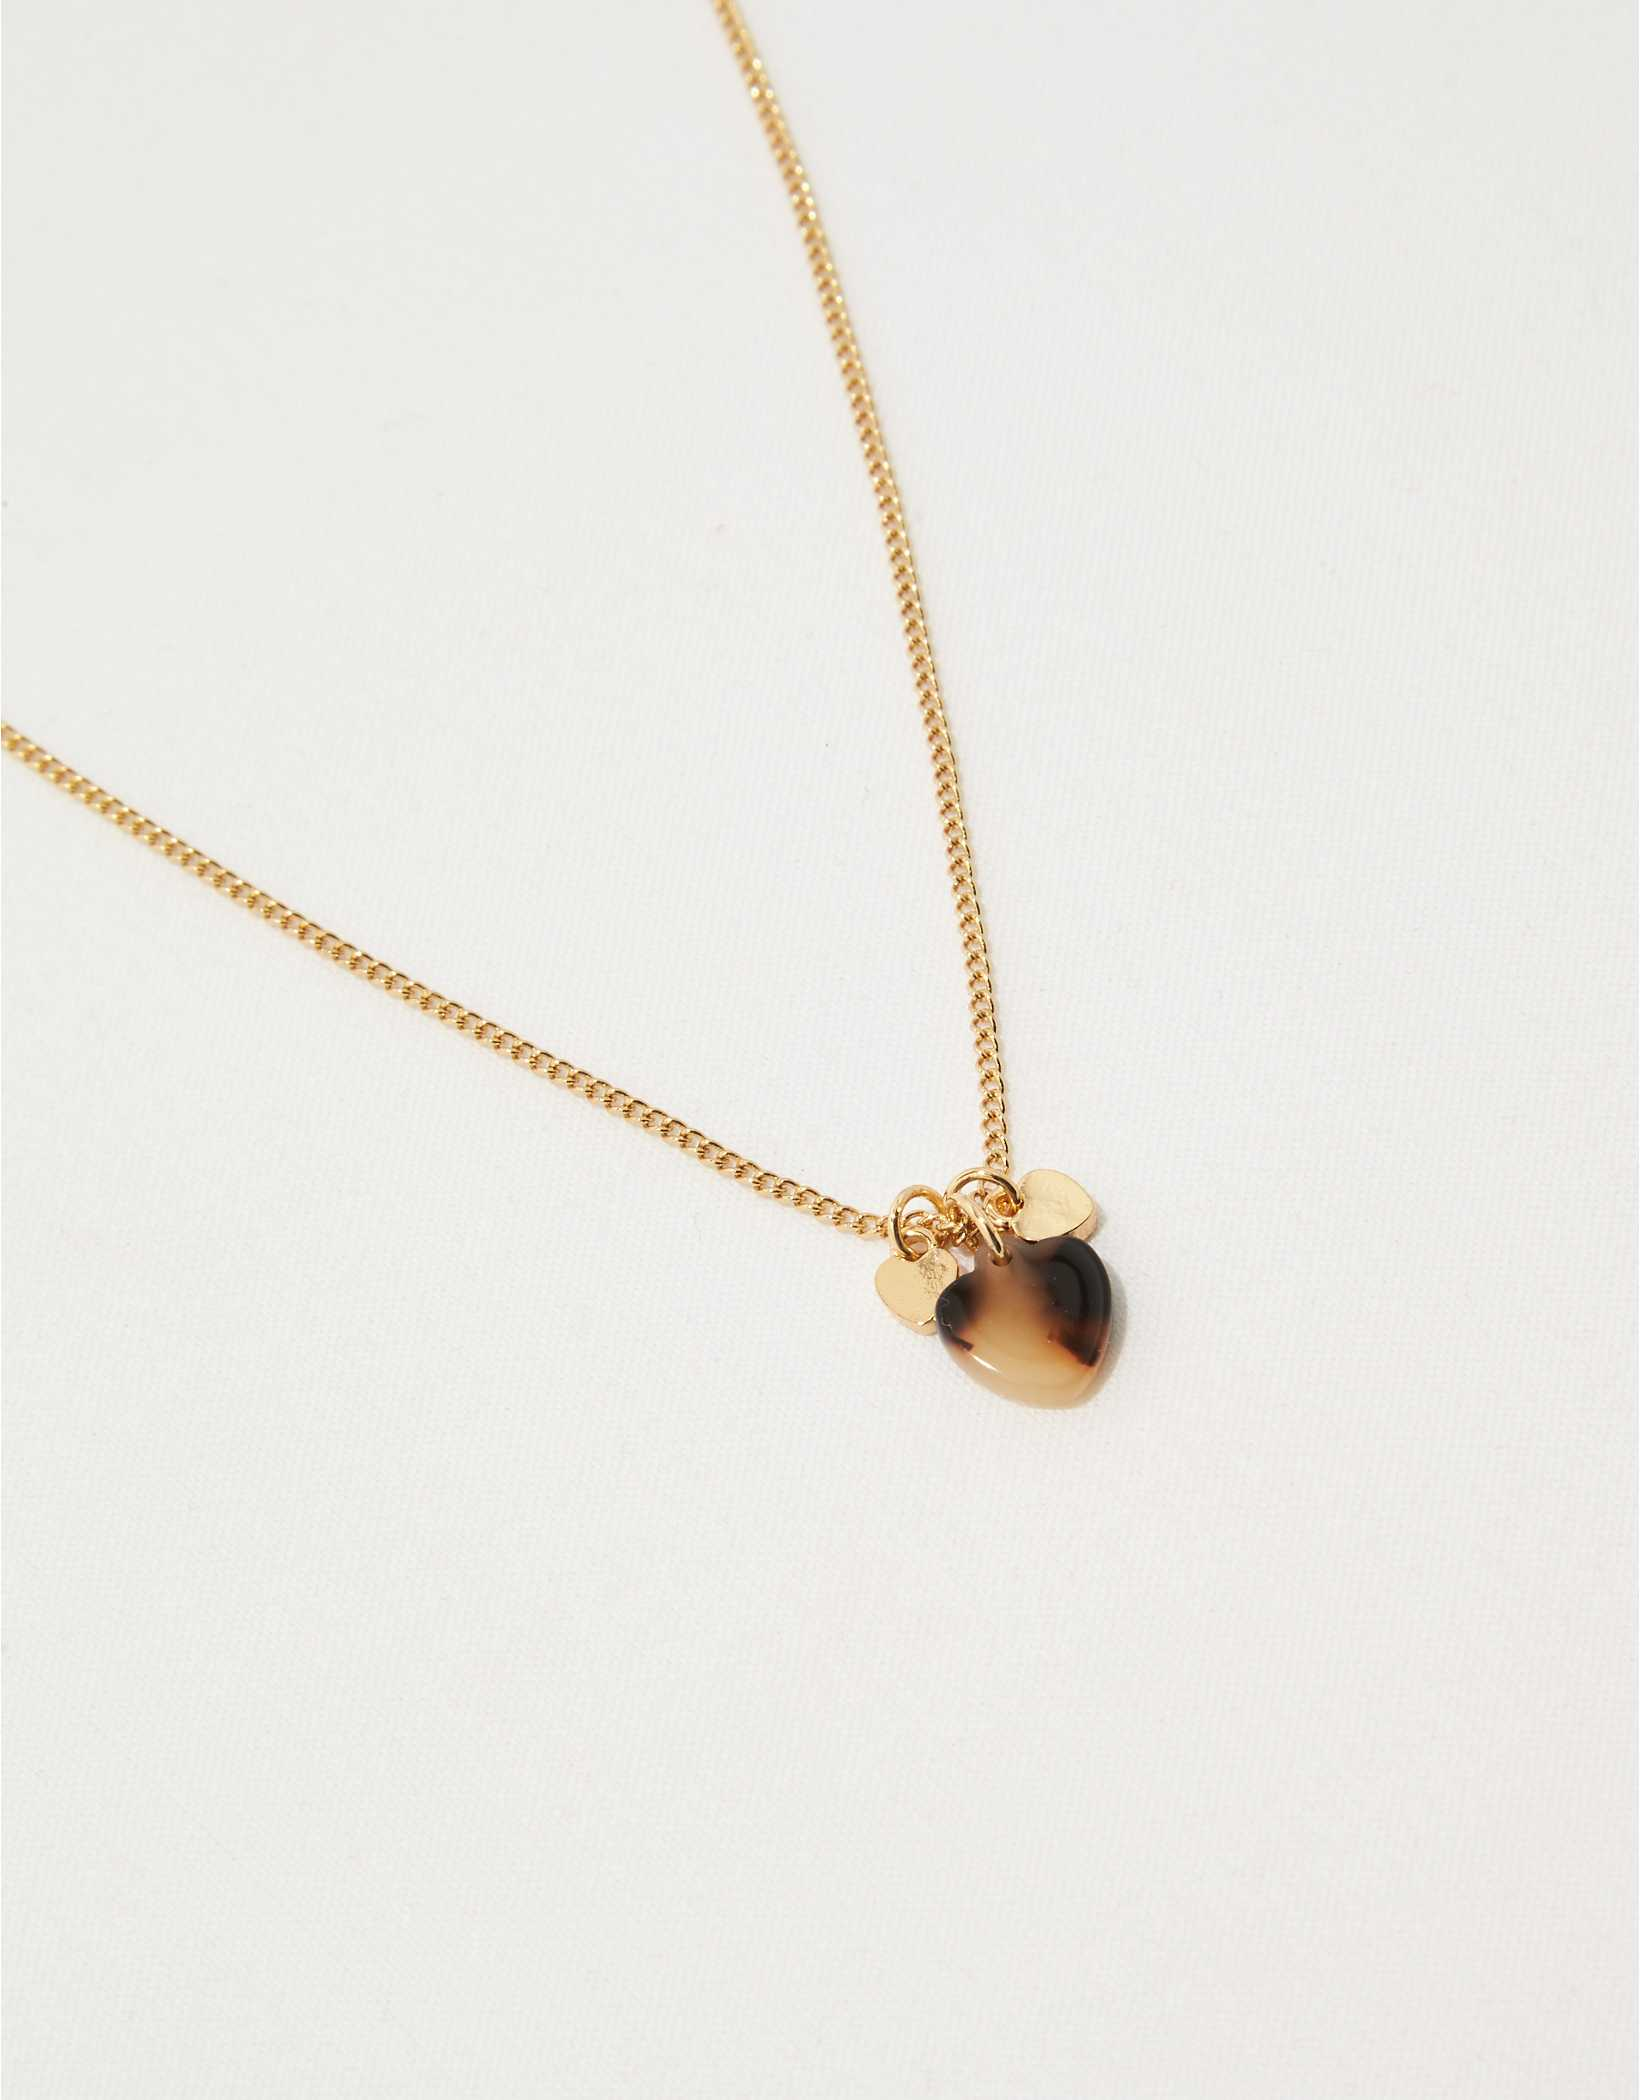 Aerie Charm Necklace